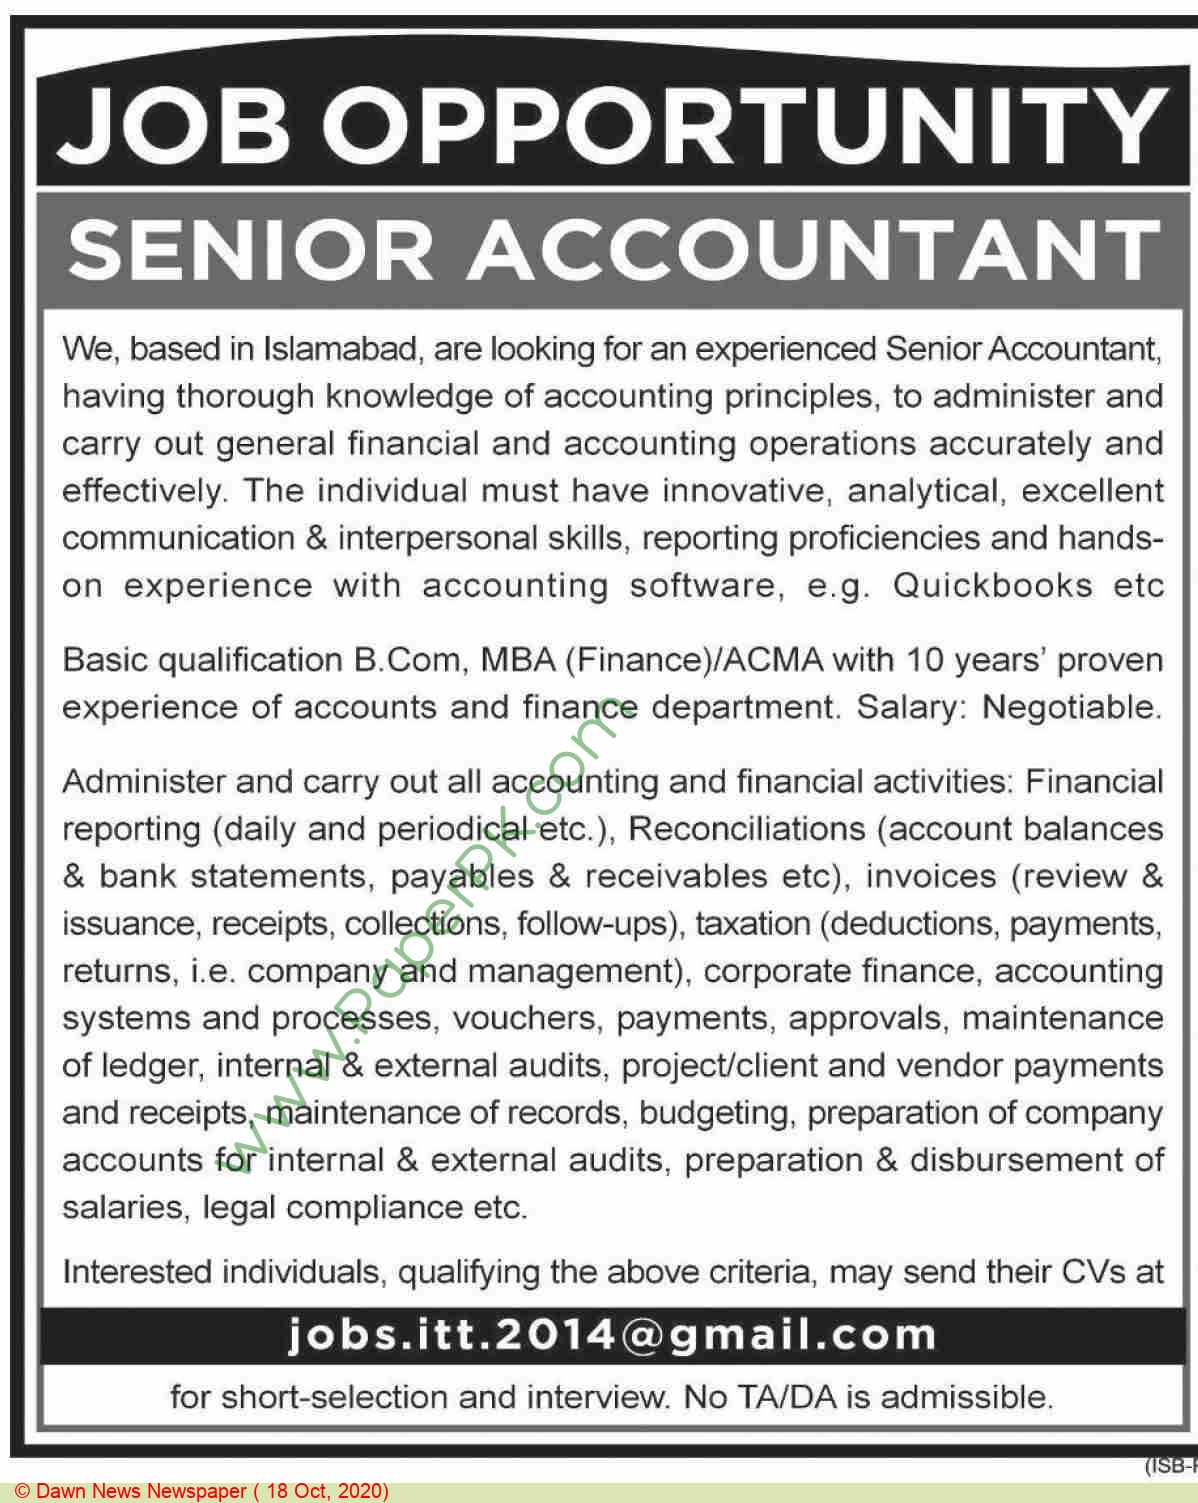 Islamabad Based Company jobs newspaper ad for Senior Accountant in Islamabad